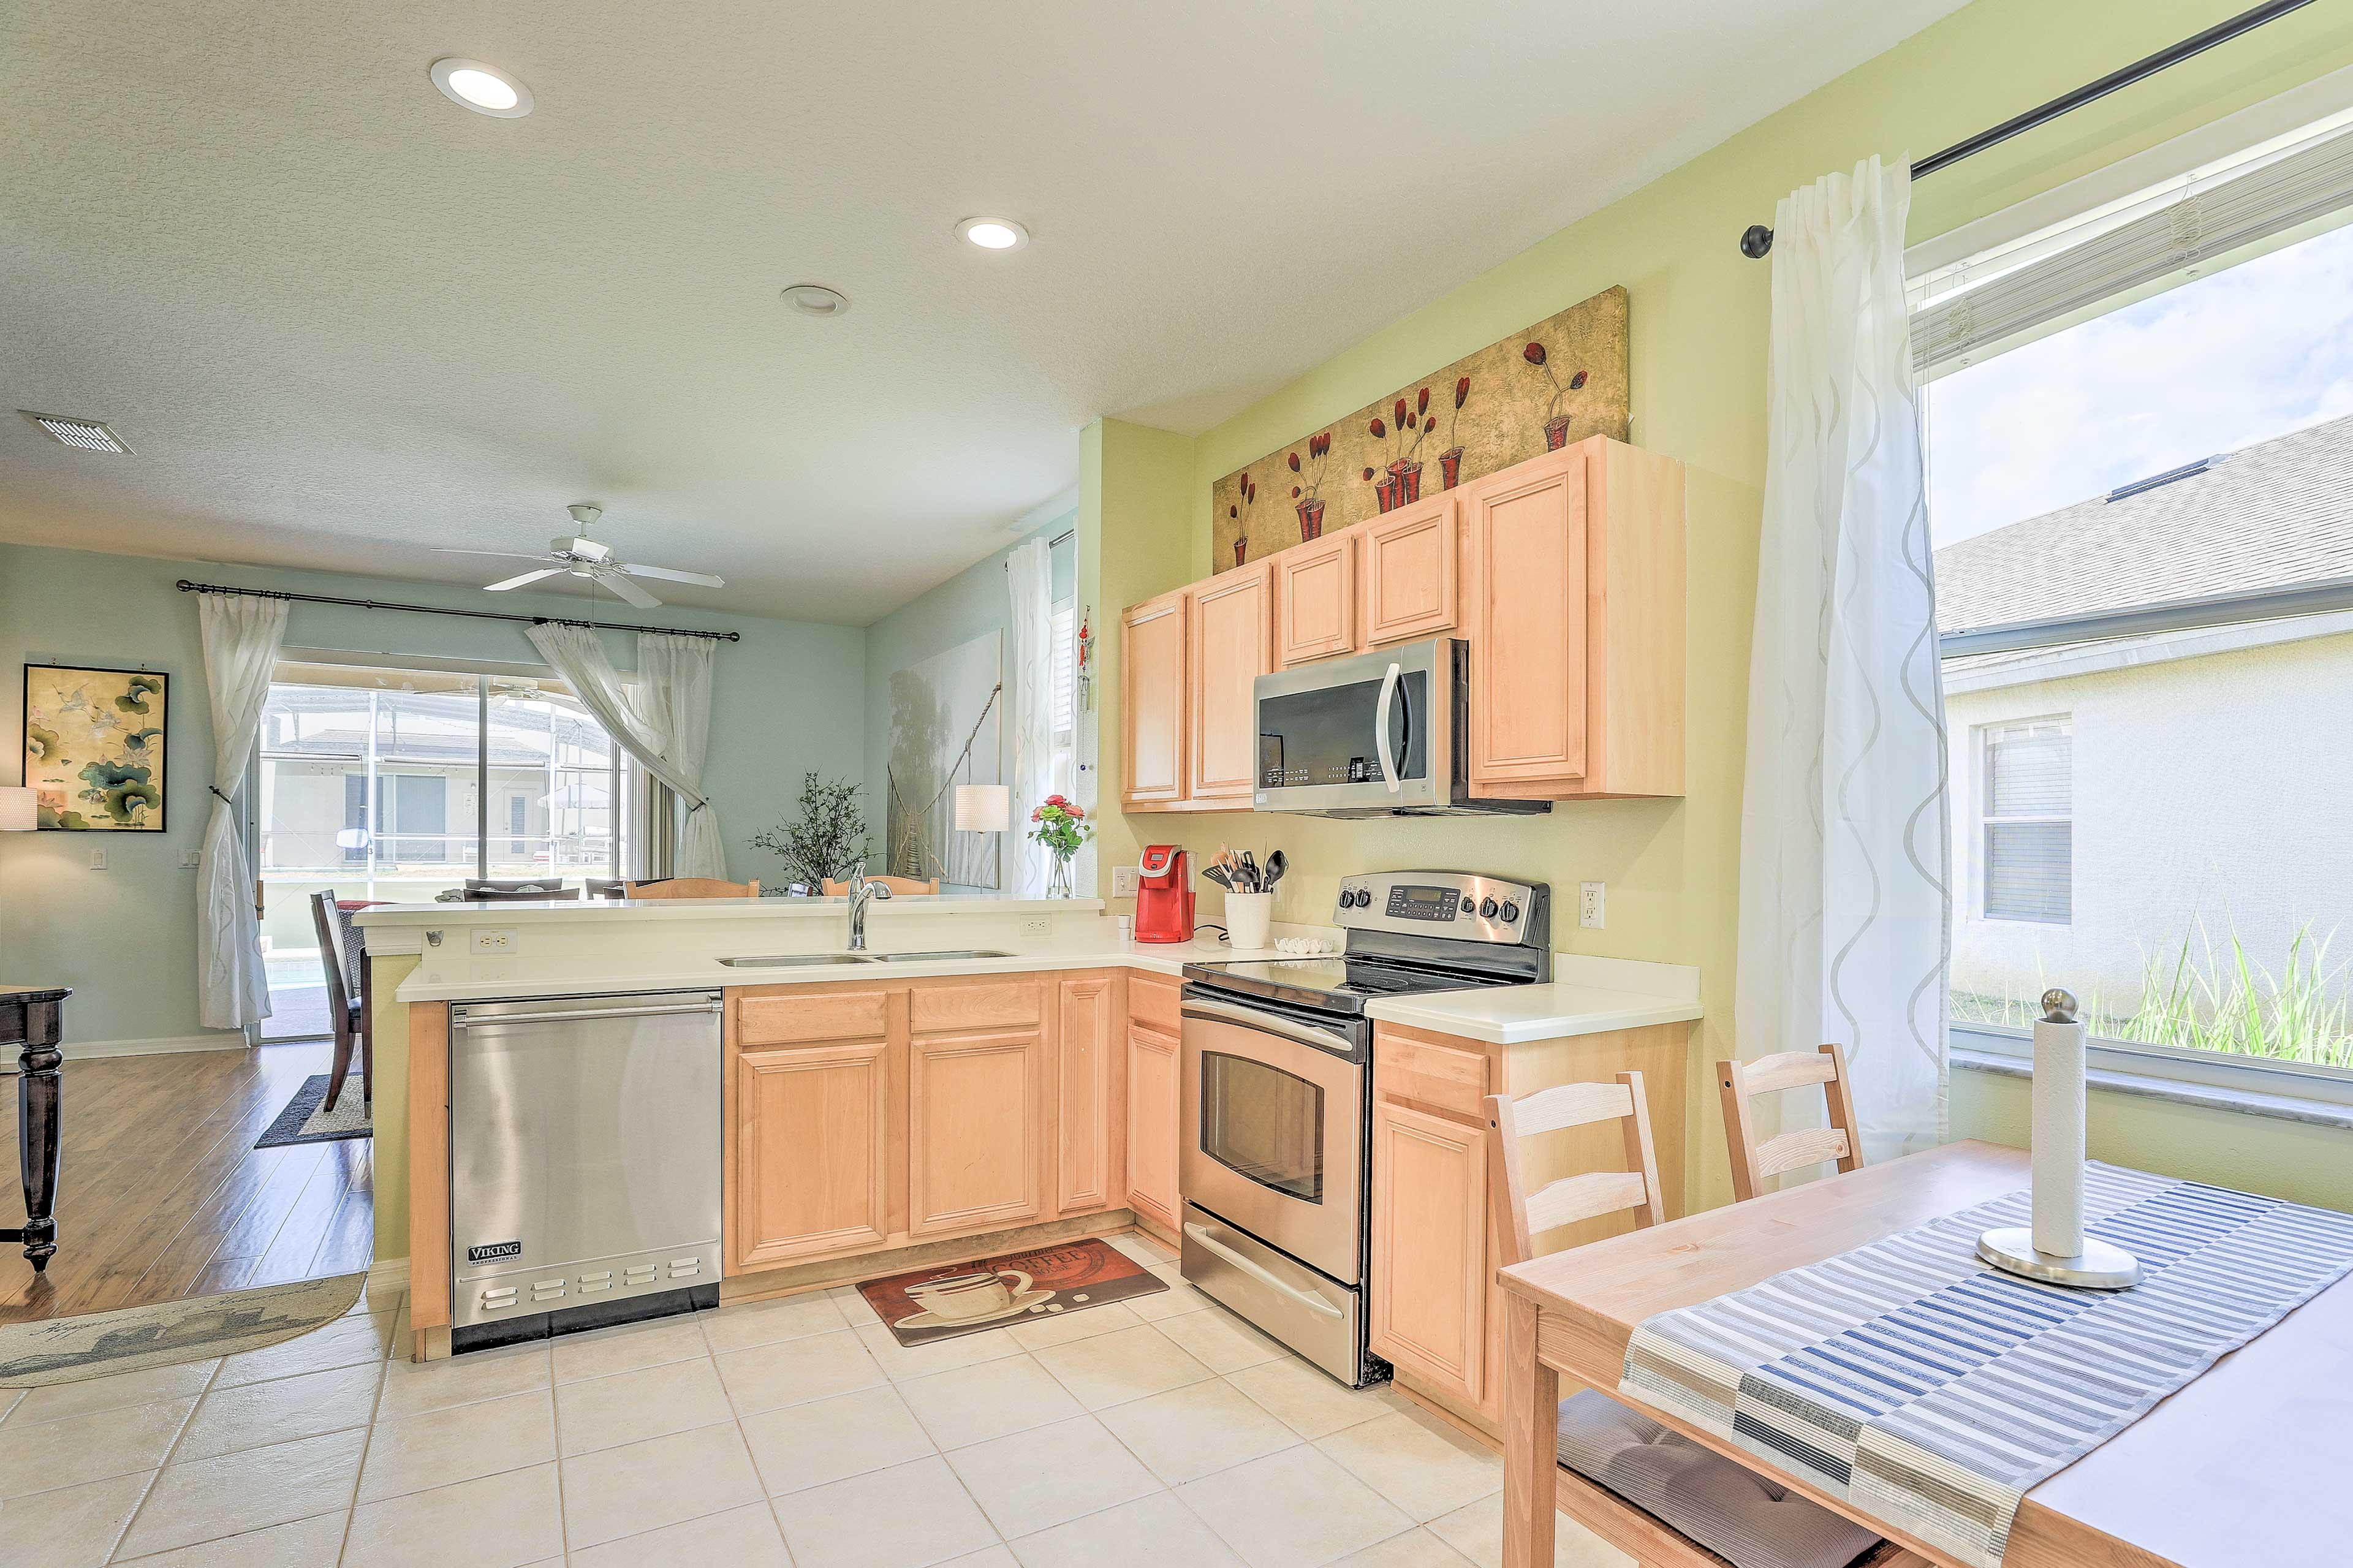 The fully equipped kitchen has everything you need!